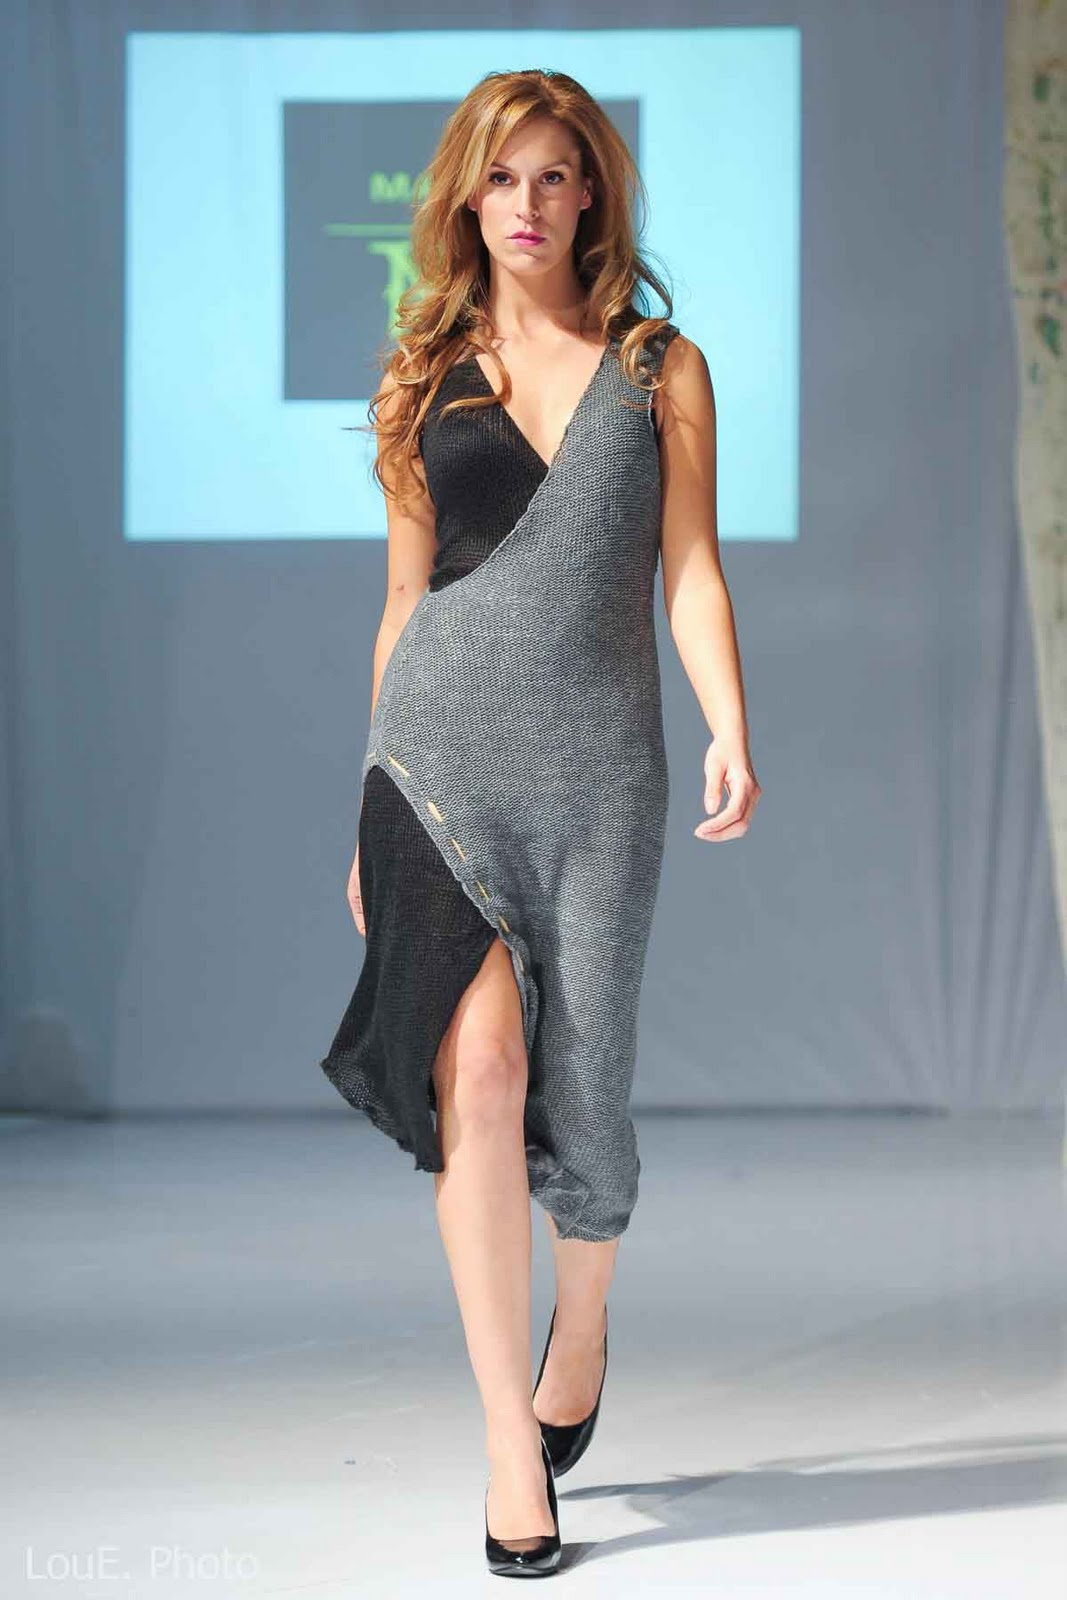 Fashion show runway dresses fashion selection for Fashion runway shows videos